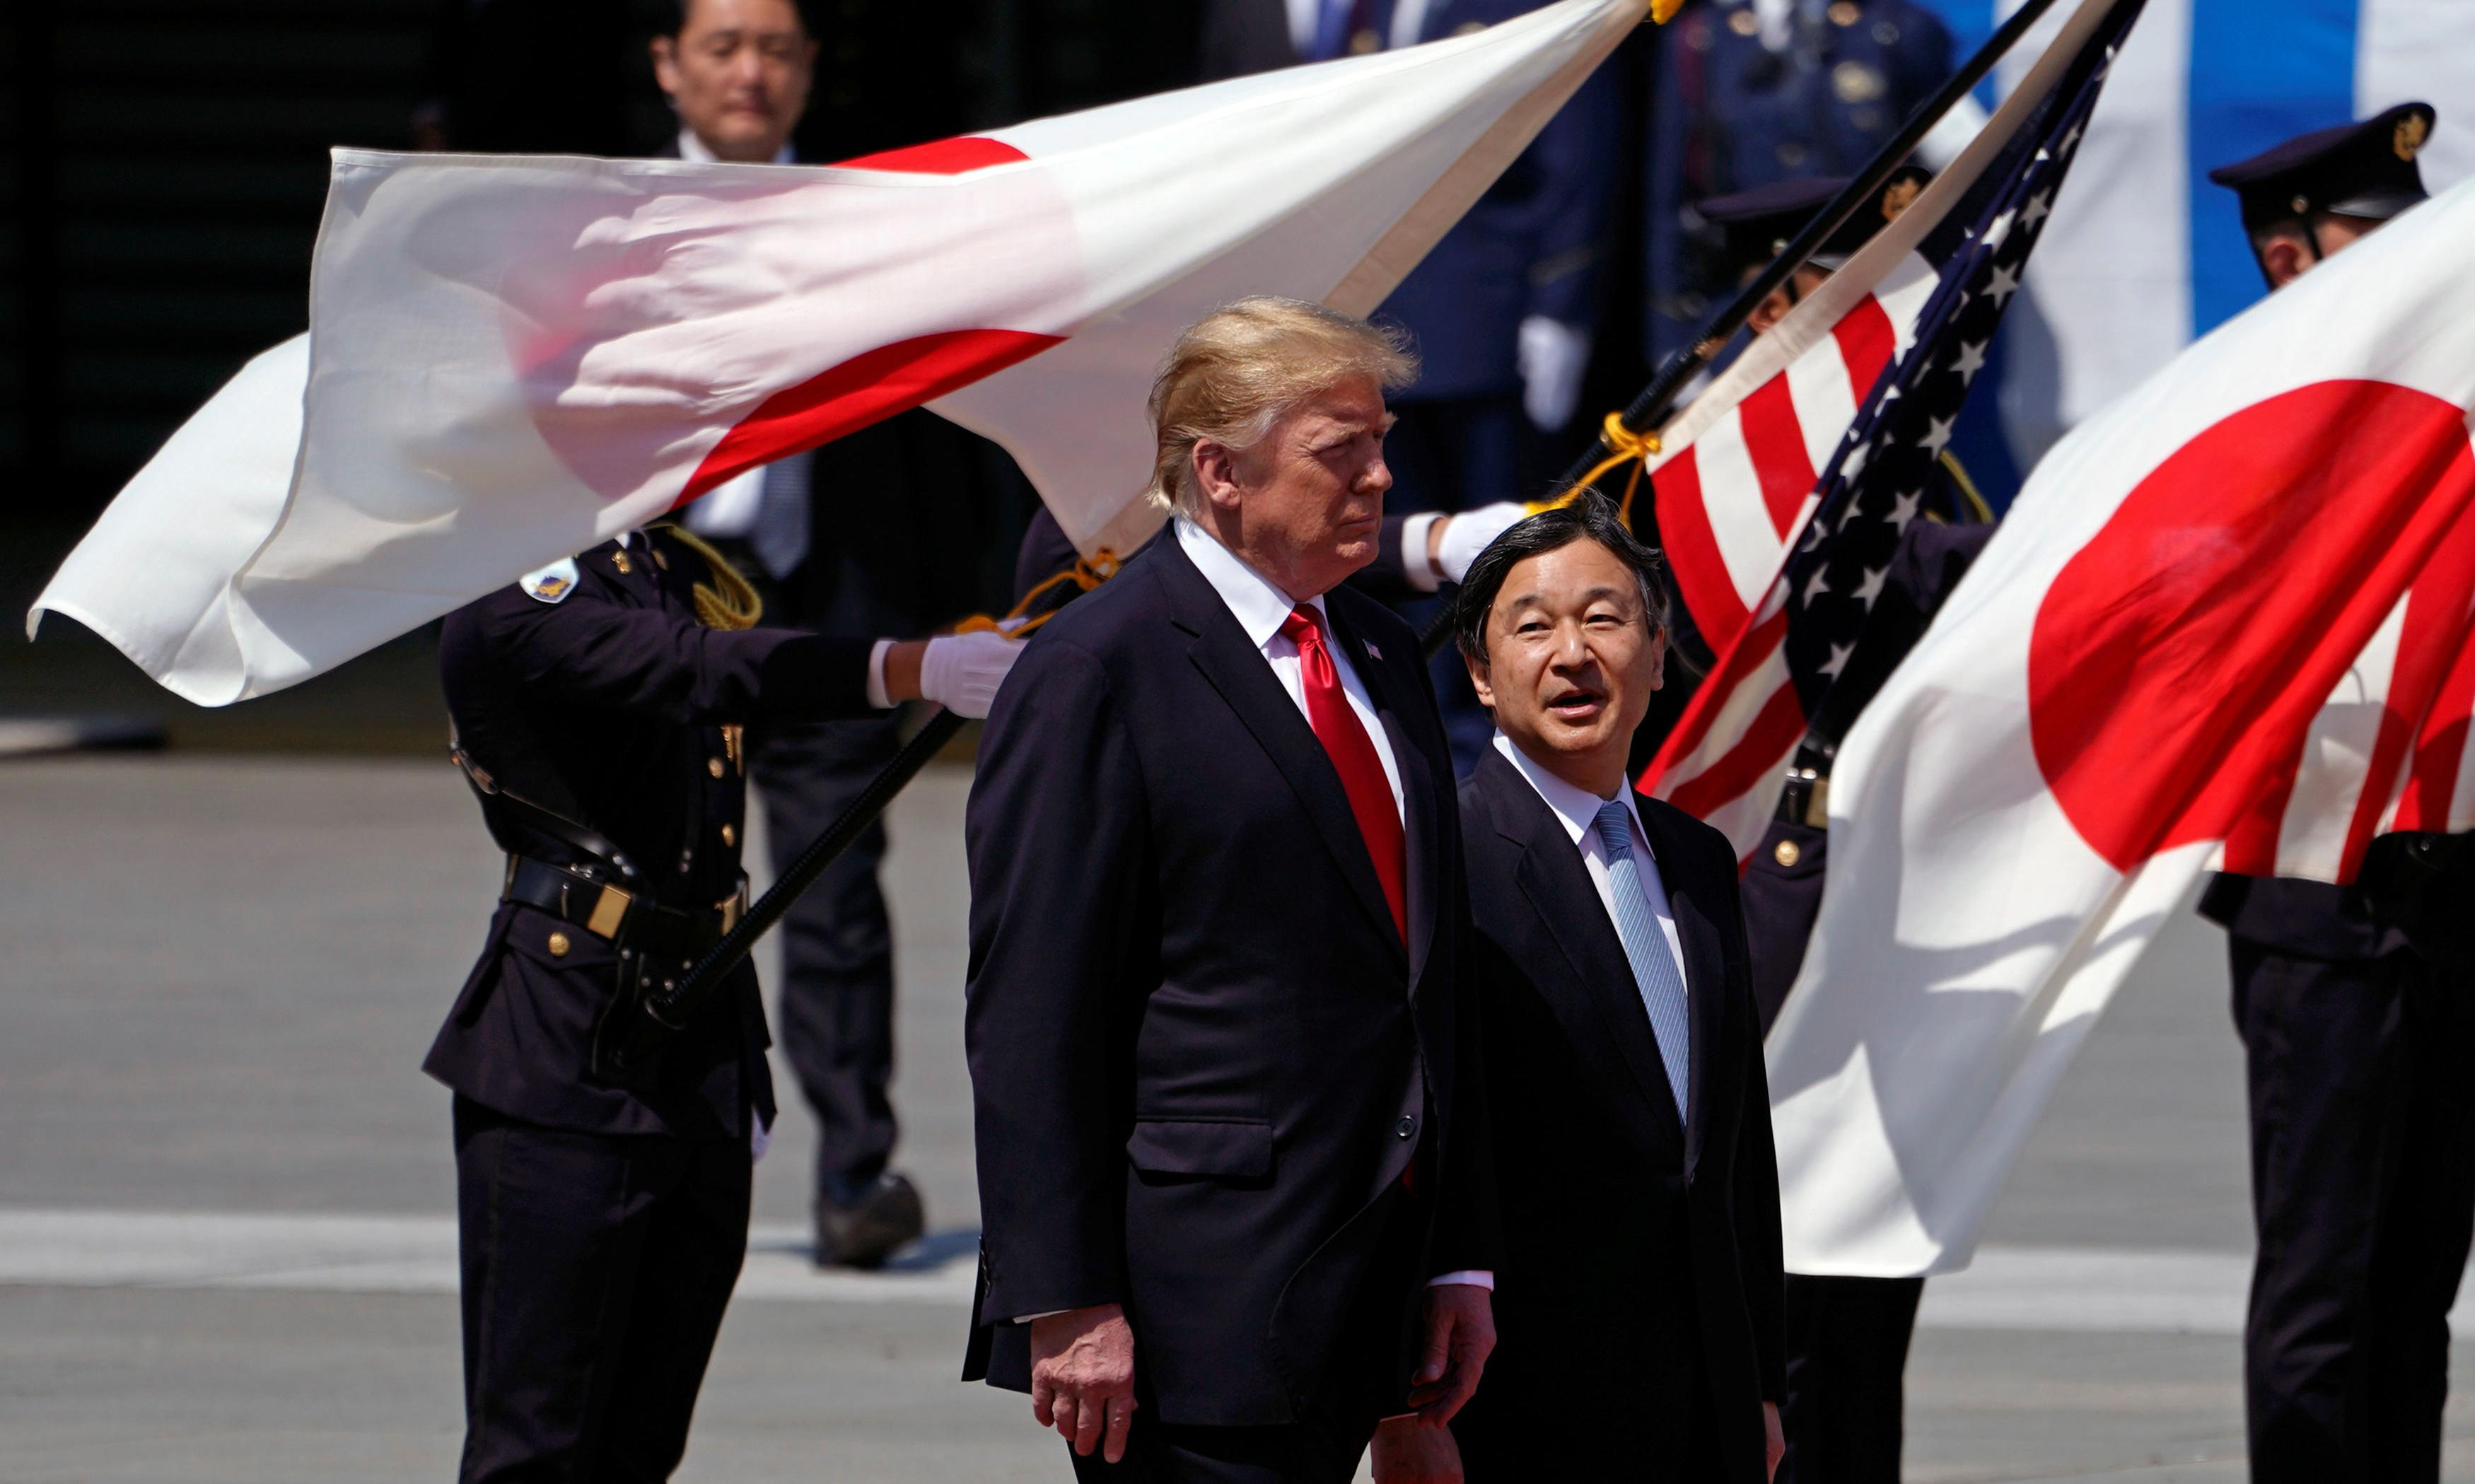 Donald Trump welcomes Japan's offer of mediation with Iran